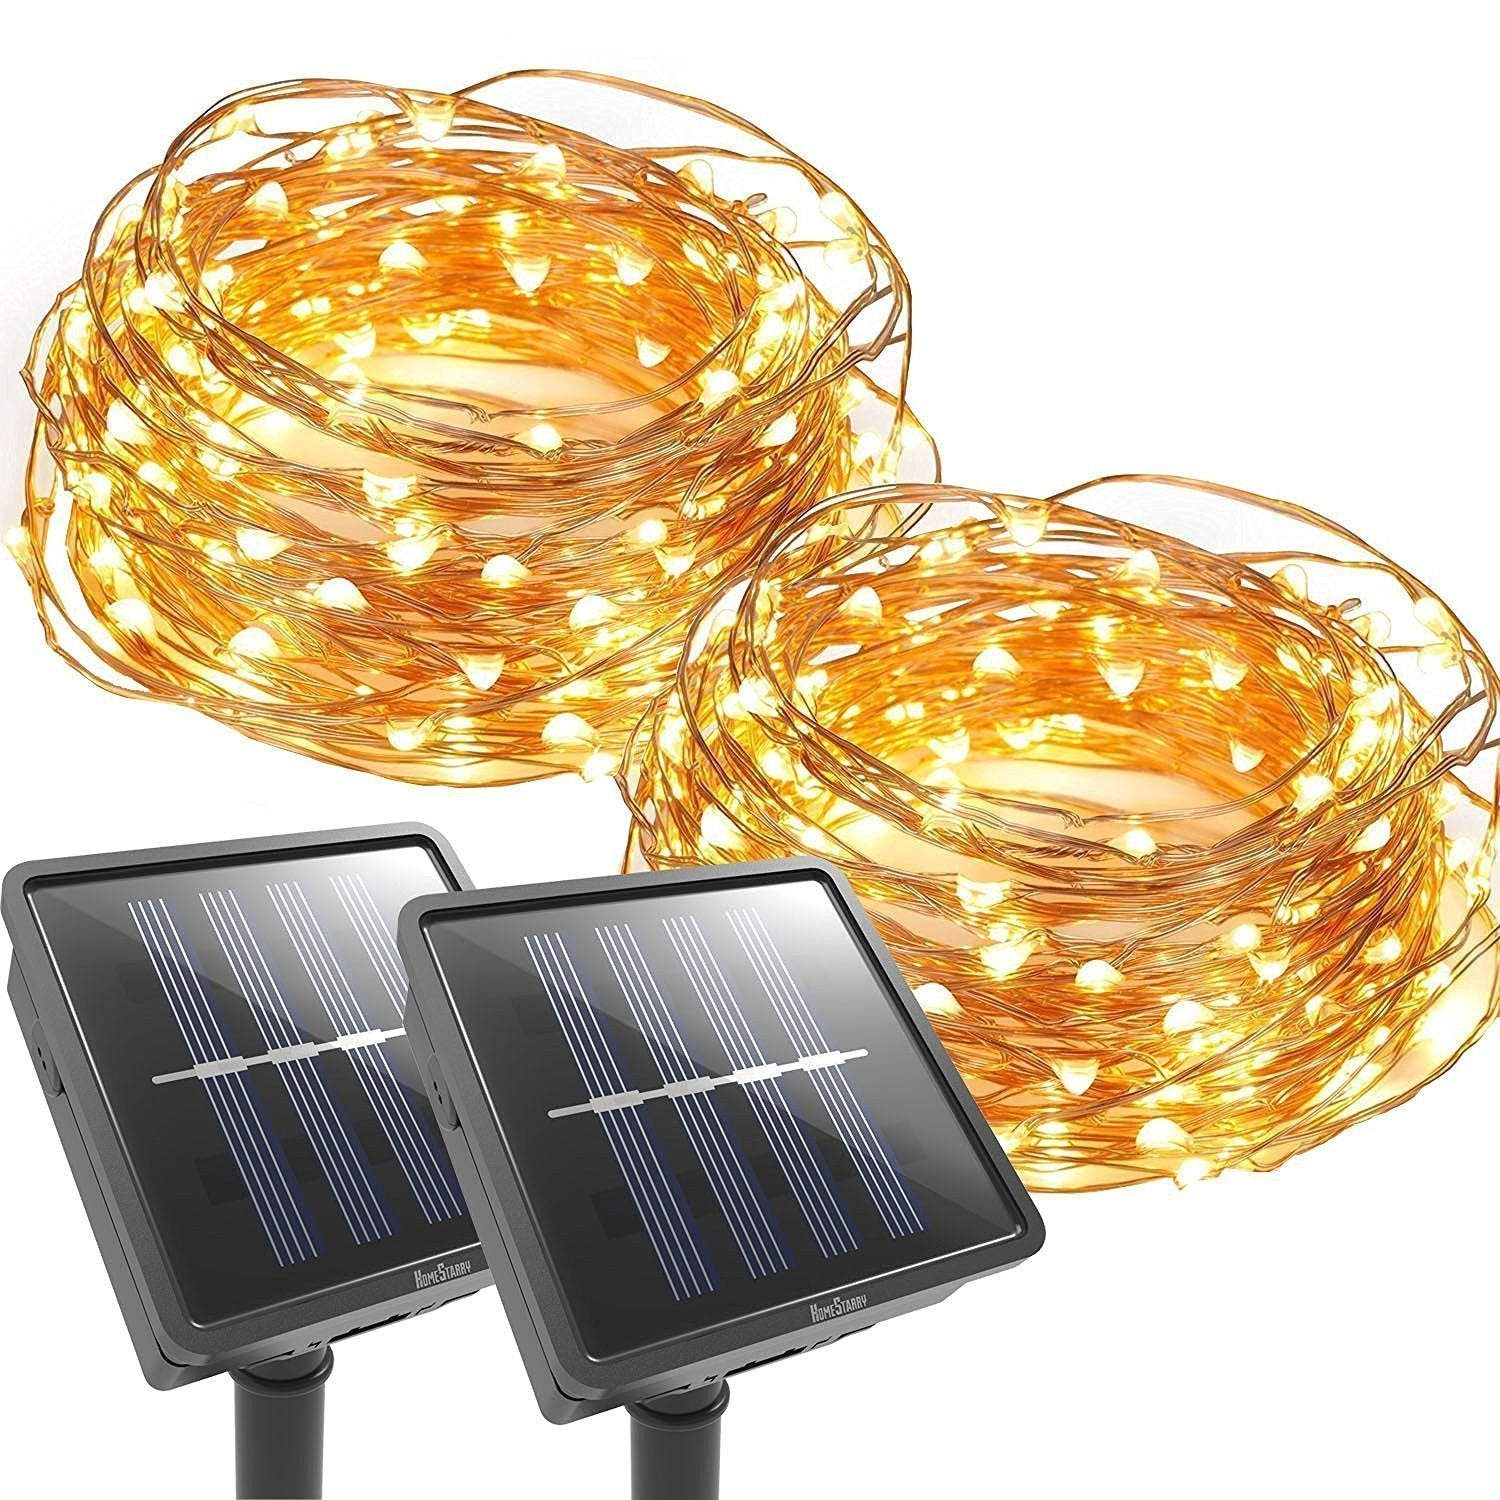 Outdoor String Lights  33 FT 100 LED Solar Christmas lighting Decorative Light - Patio - Deck - Party - Christmas Tree - Provide Christmas Fairy Decorative Lightx 2 Pack